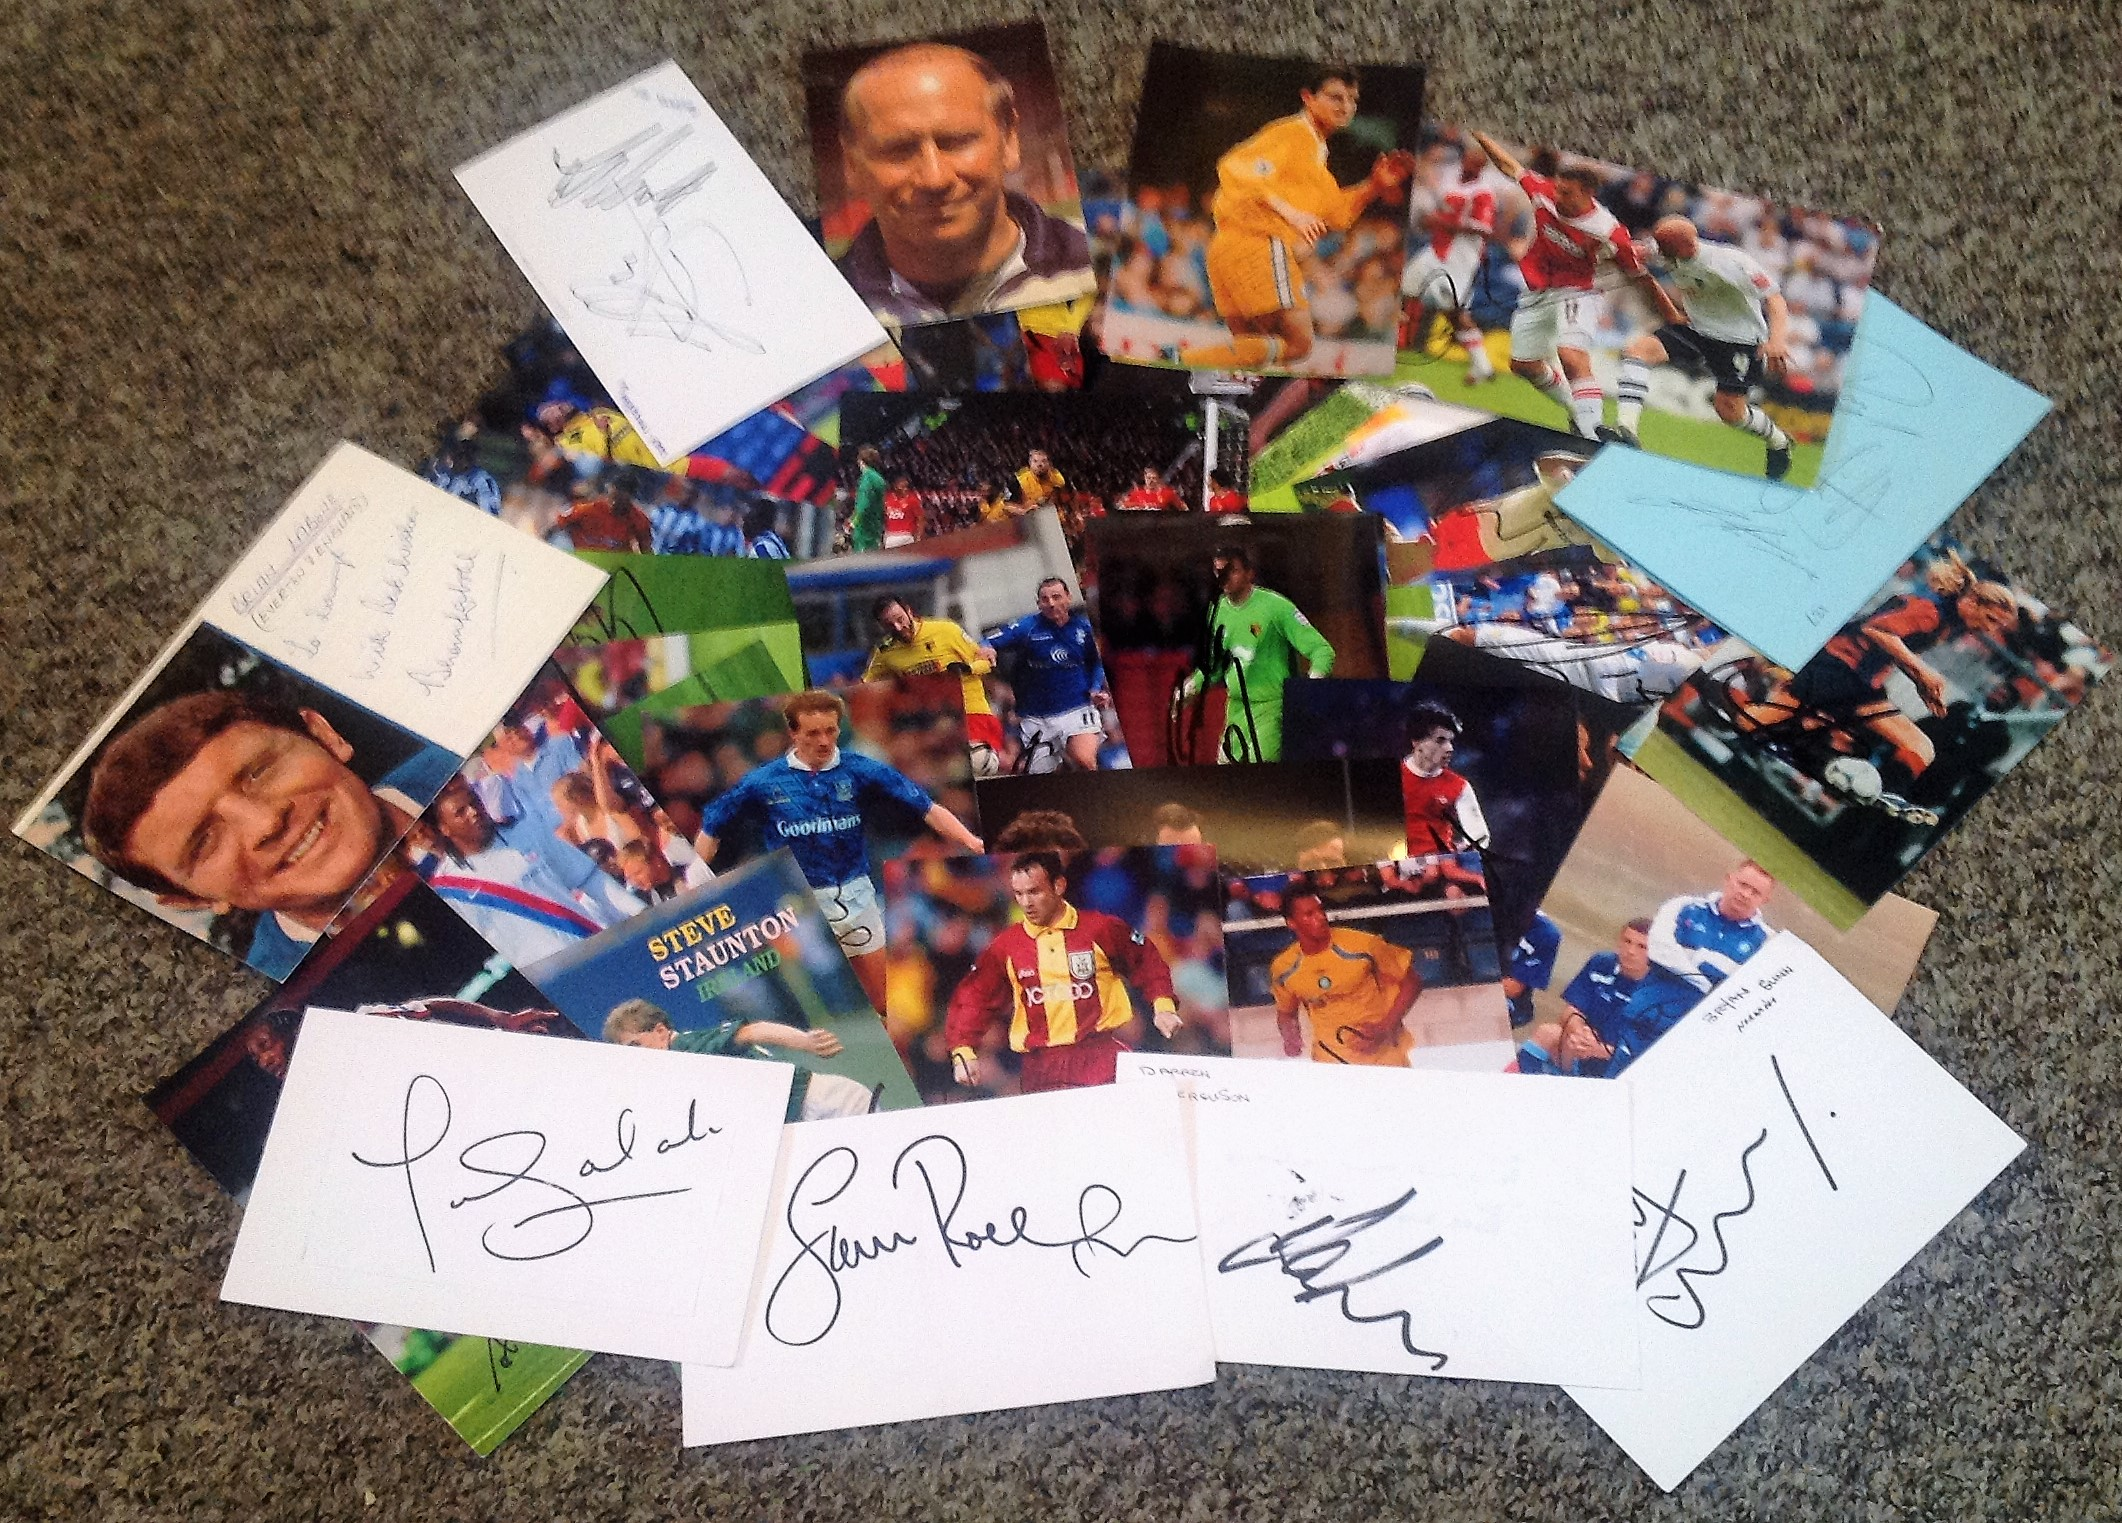 Lot 11 - Football collection 40 assorted signed white cards, 7x5 and 6x4 photos from players past and present